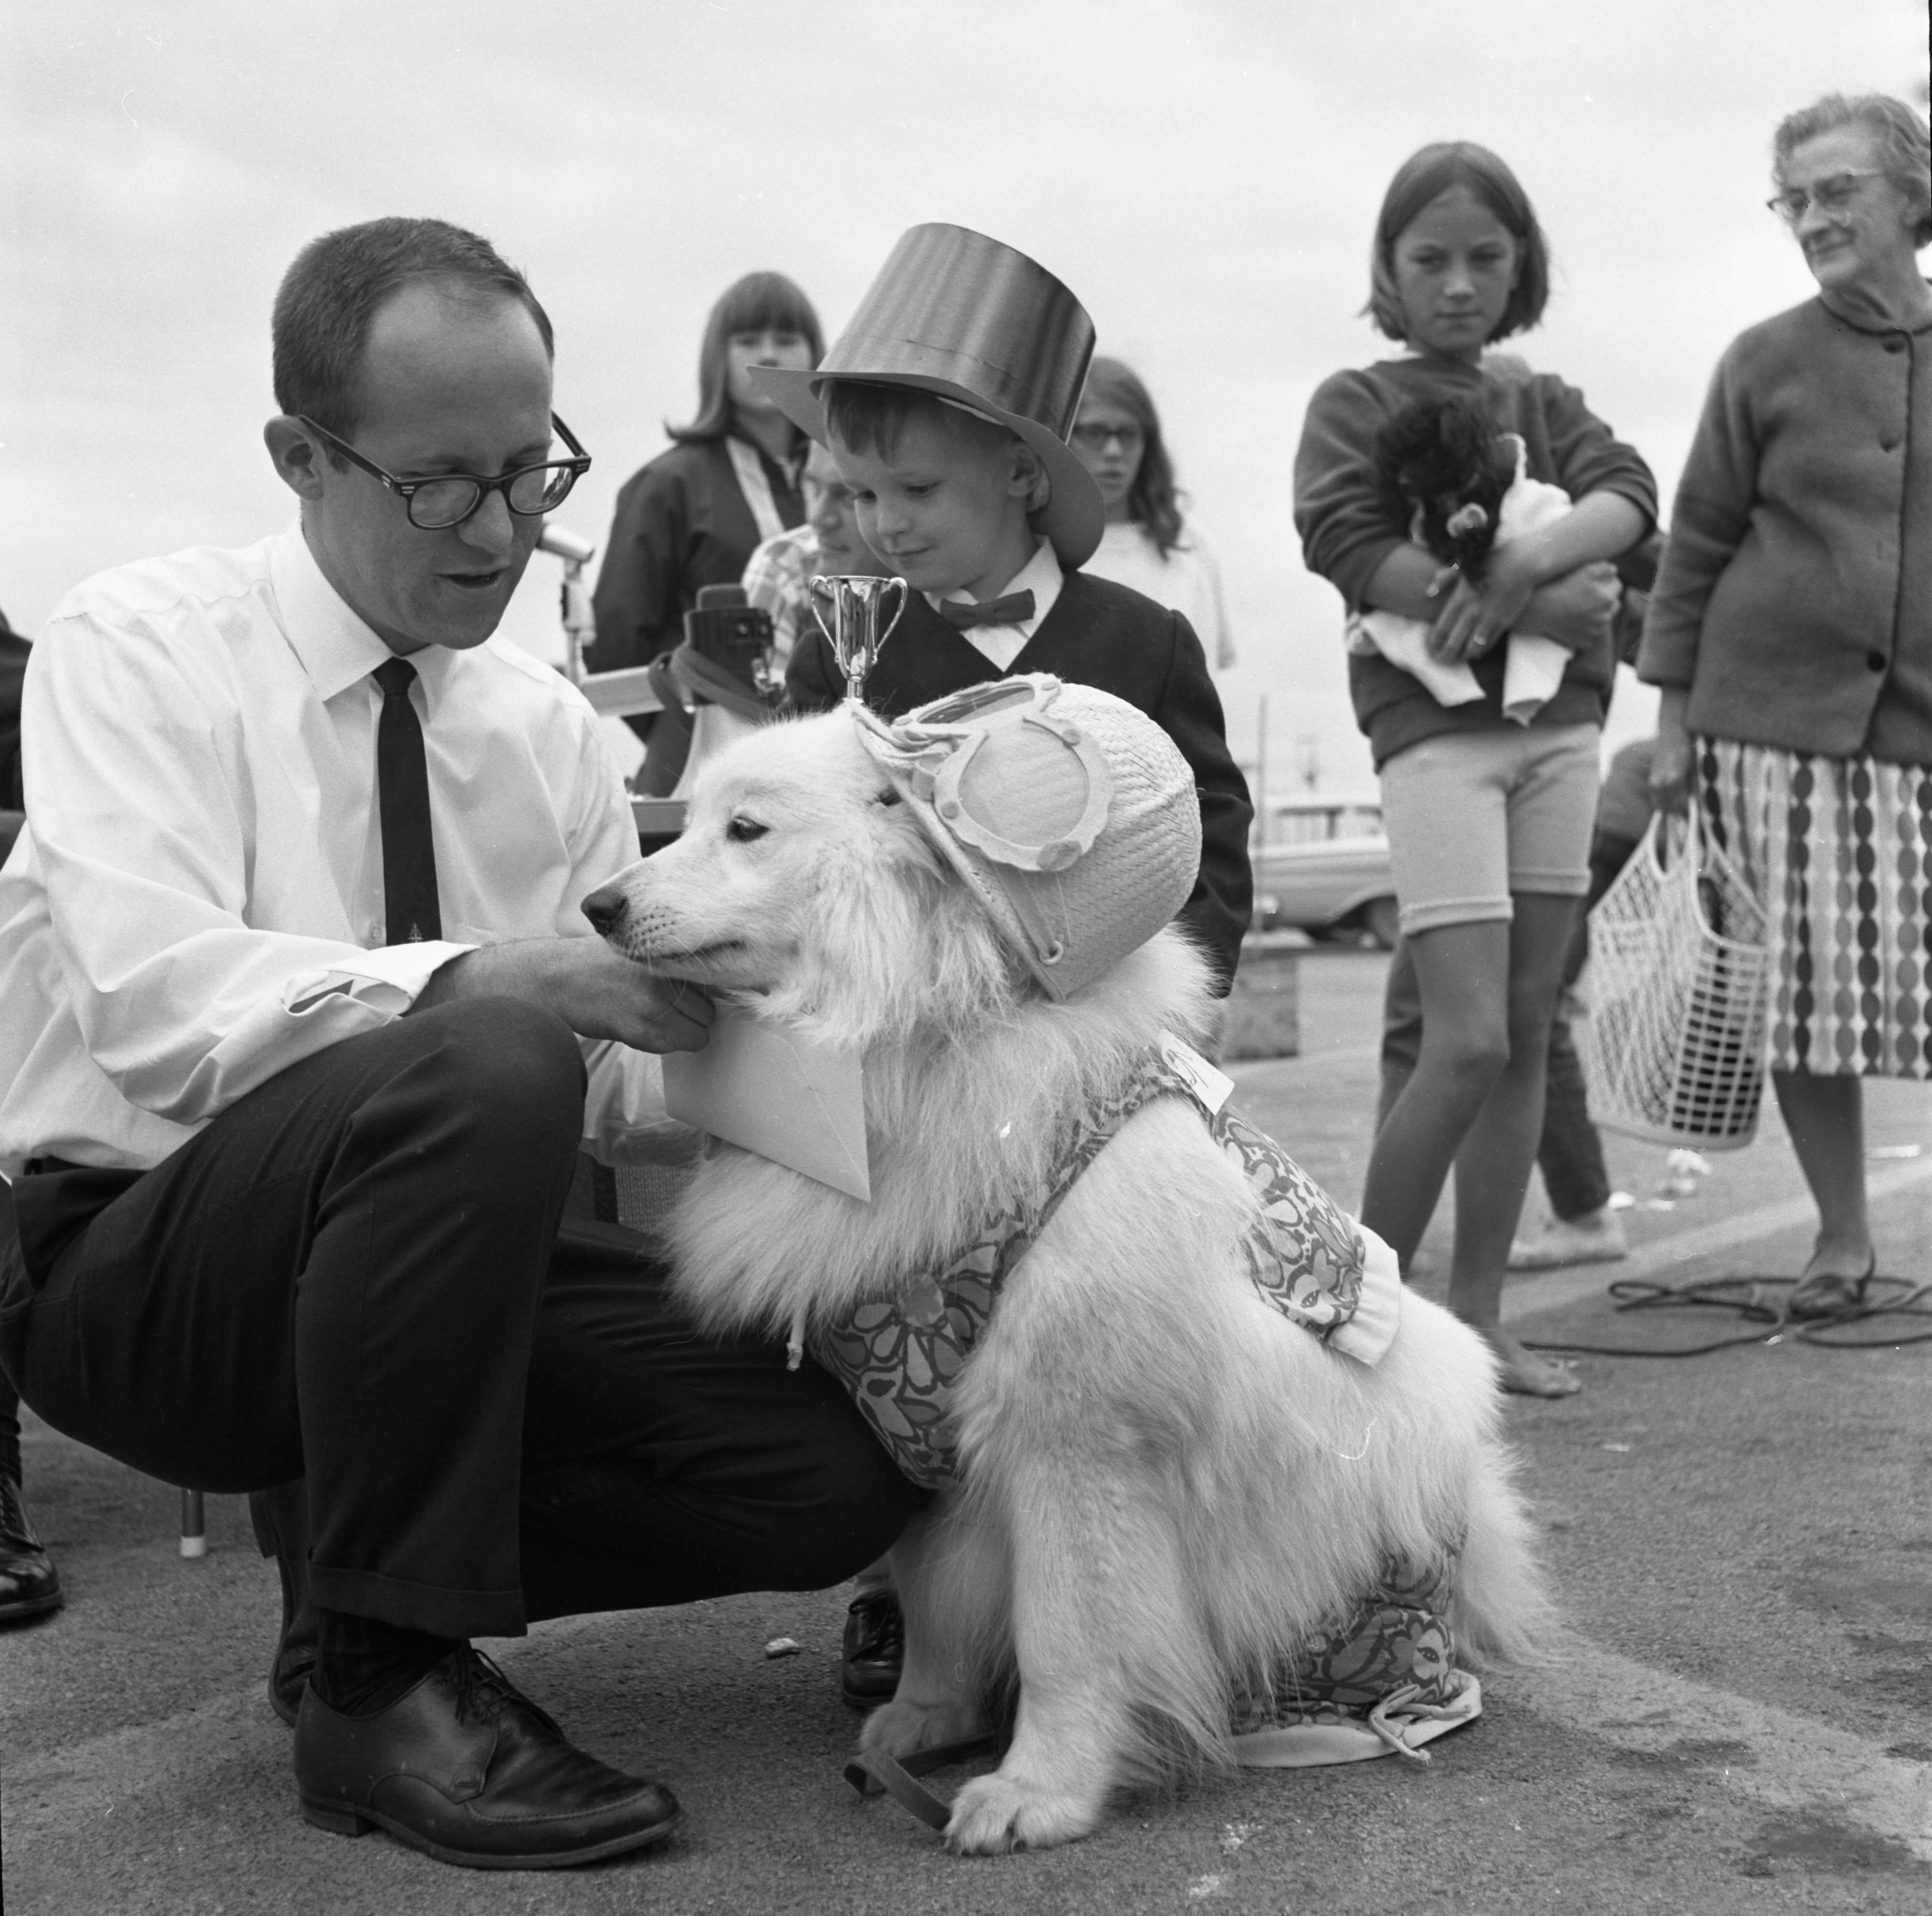 Kevin P. McCollough & His Dog, Showball, Winners At Westgate Shopping Center's Pet Circus, July 17, 1967 image